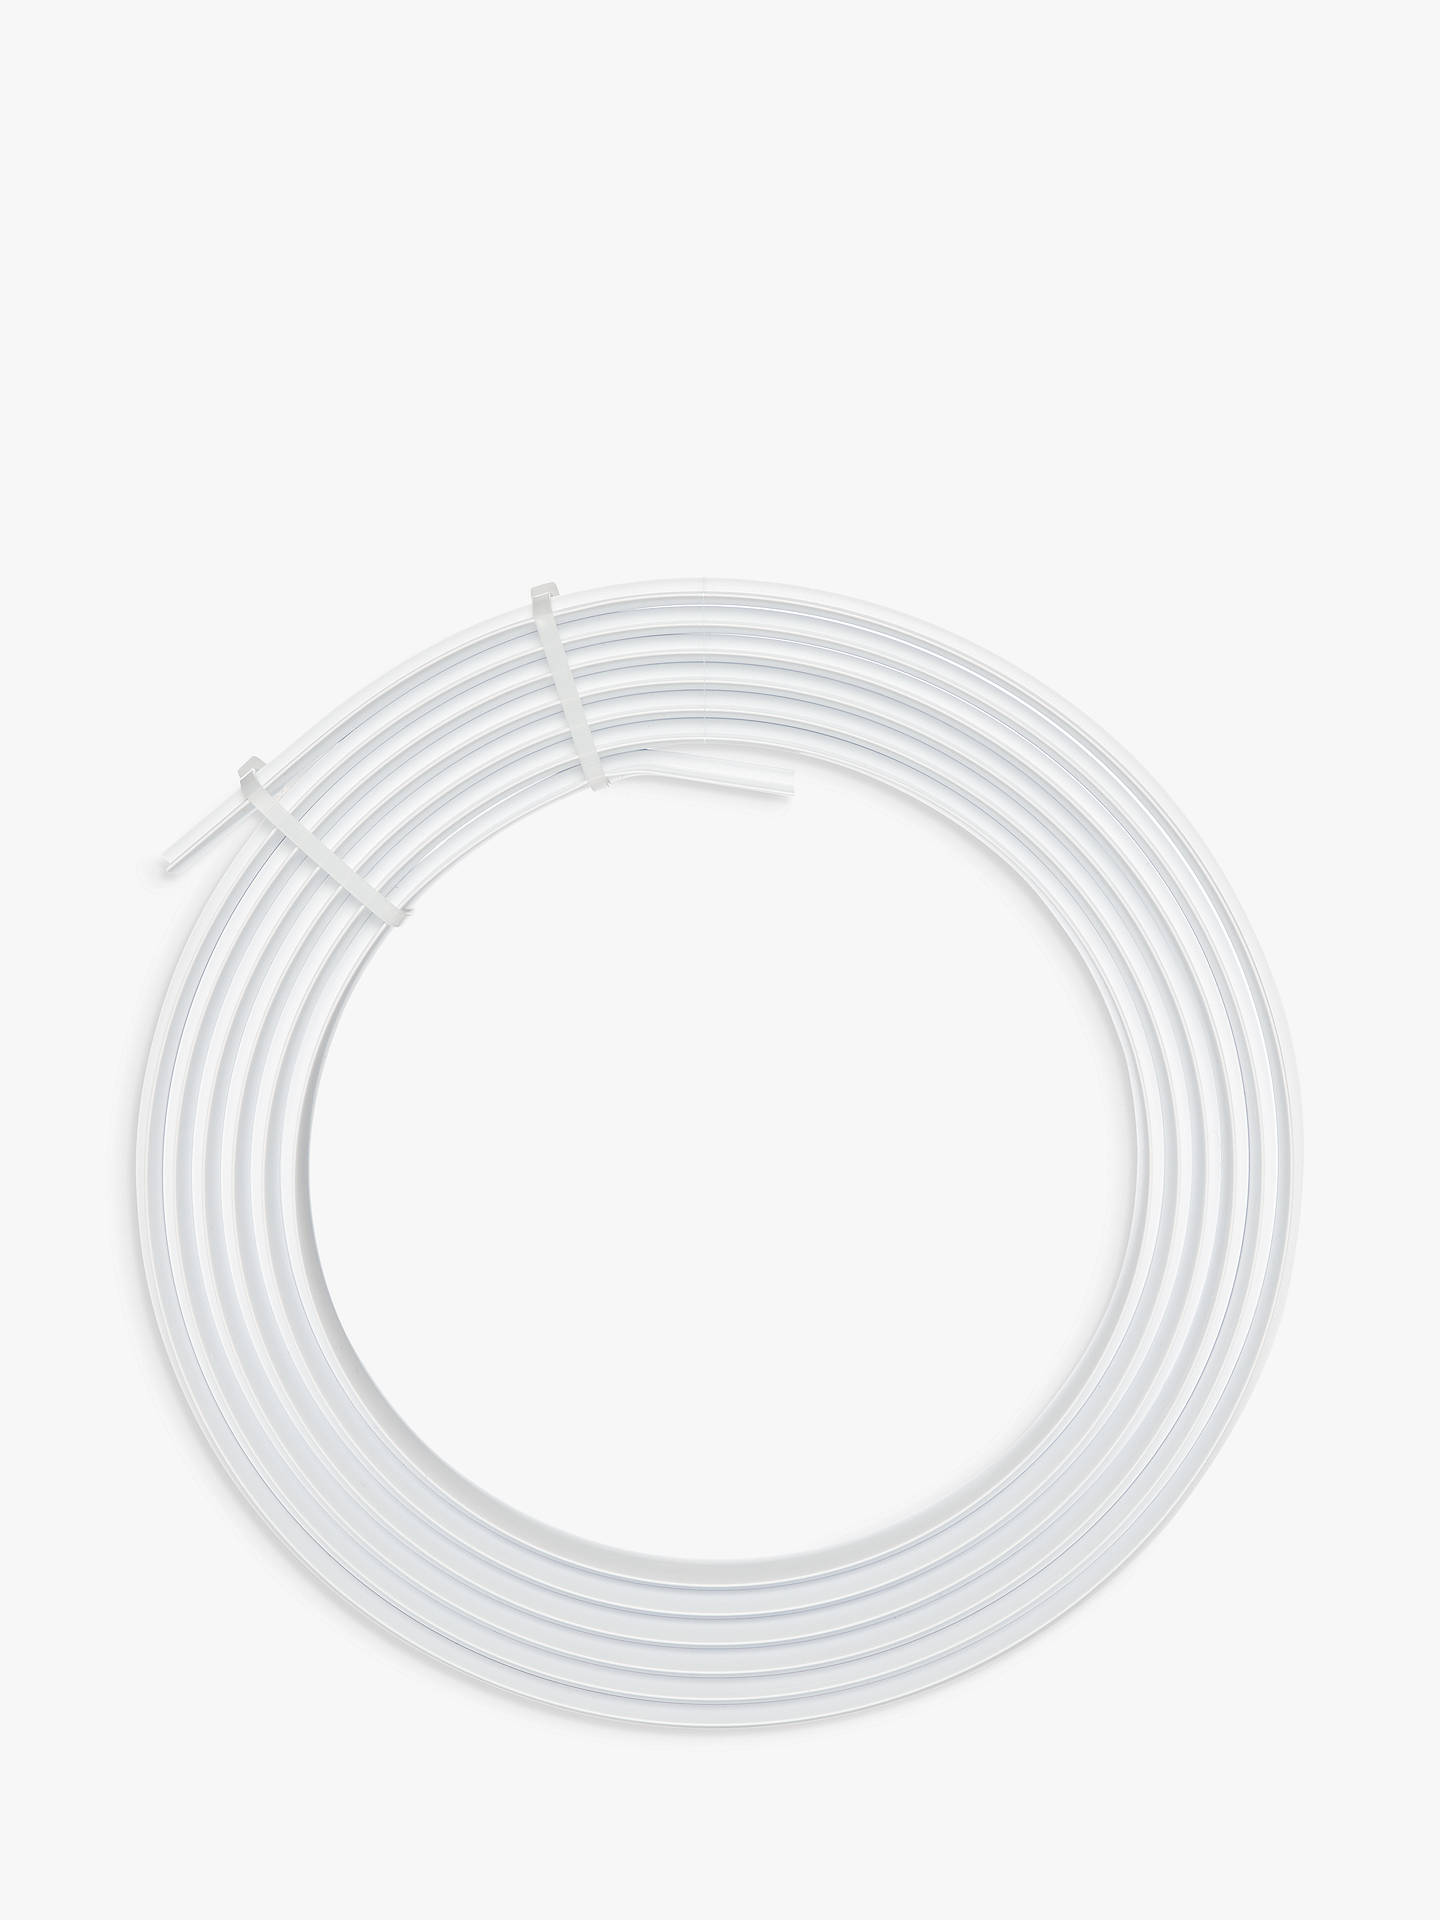 BuyJohn Lewis & Partners Coiled Curtain Track, 5m Online at johnlewis.com